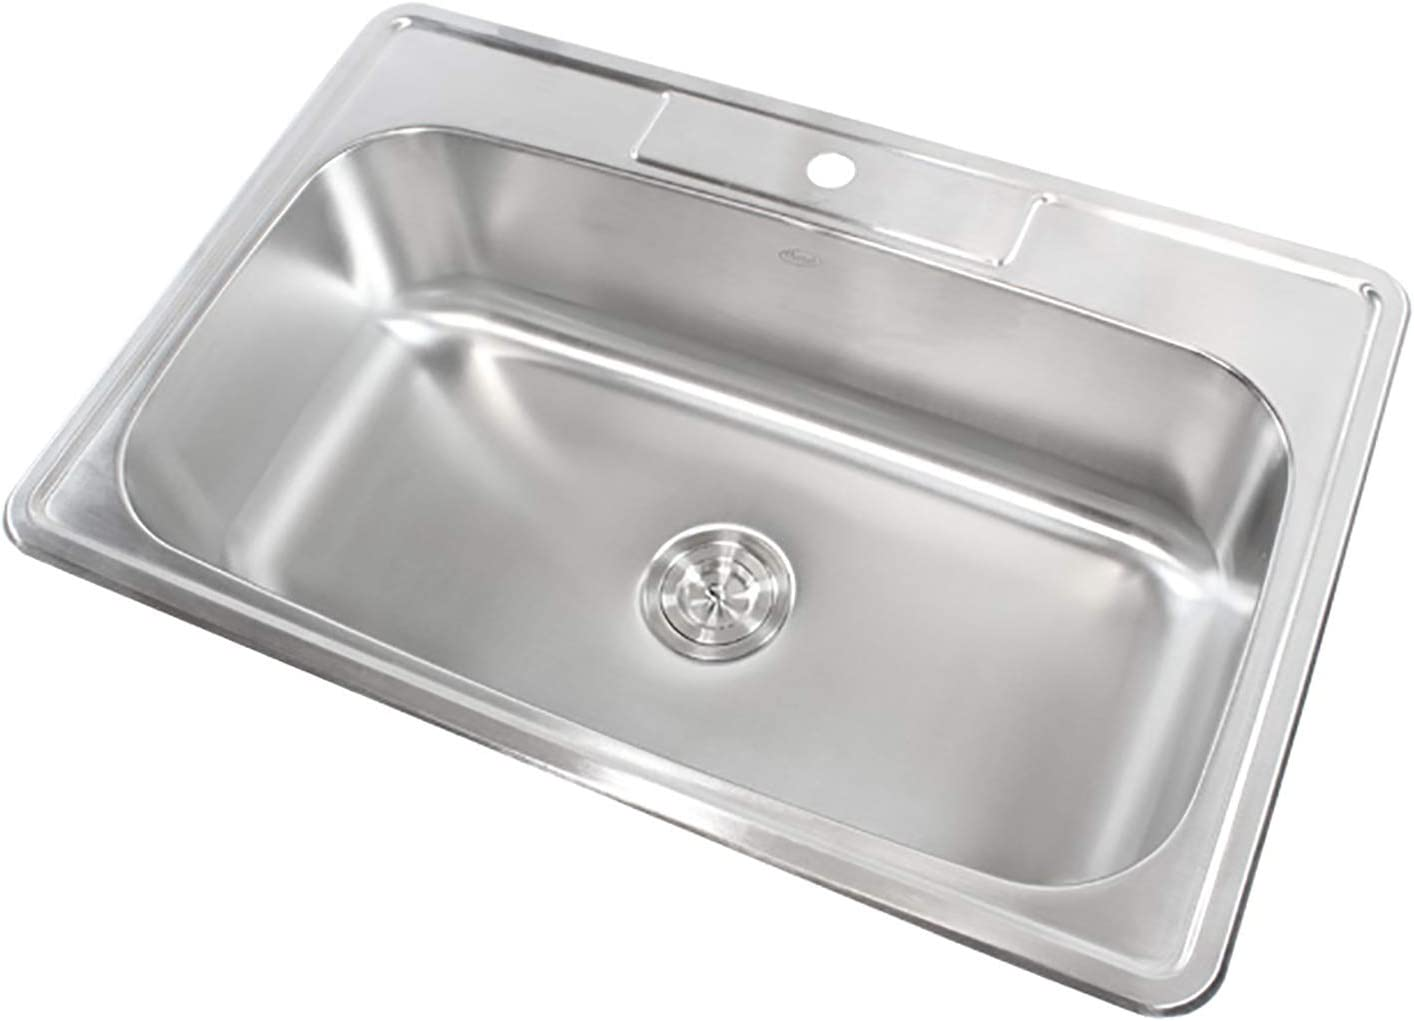 33 Inch Top-mount Drop-in Stainless Steel Single Bowl Kitchen Sink With 1 Faucet Hole – 18 Gauge